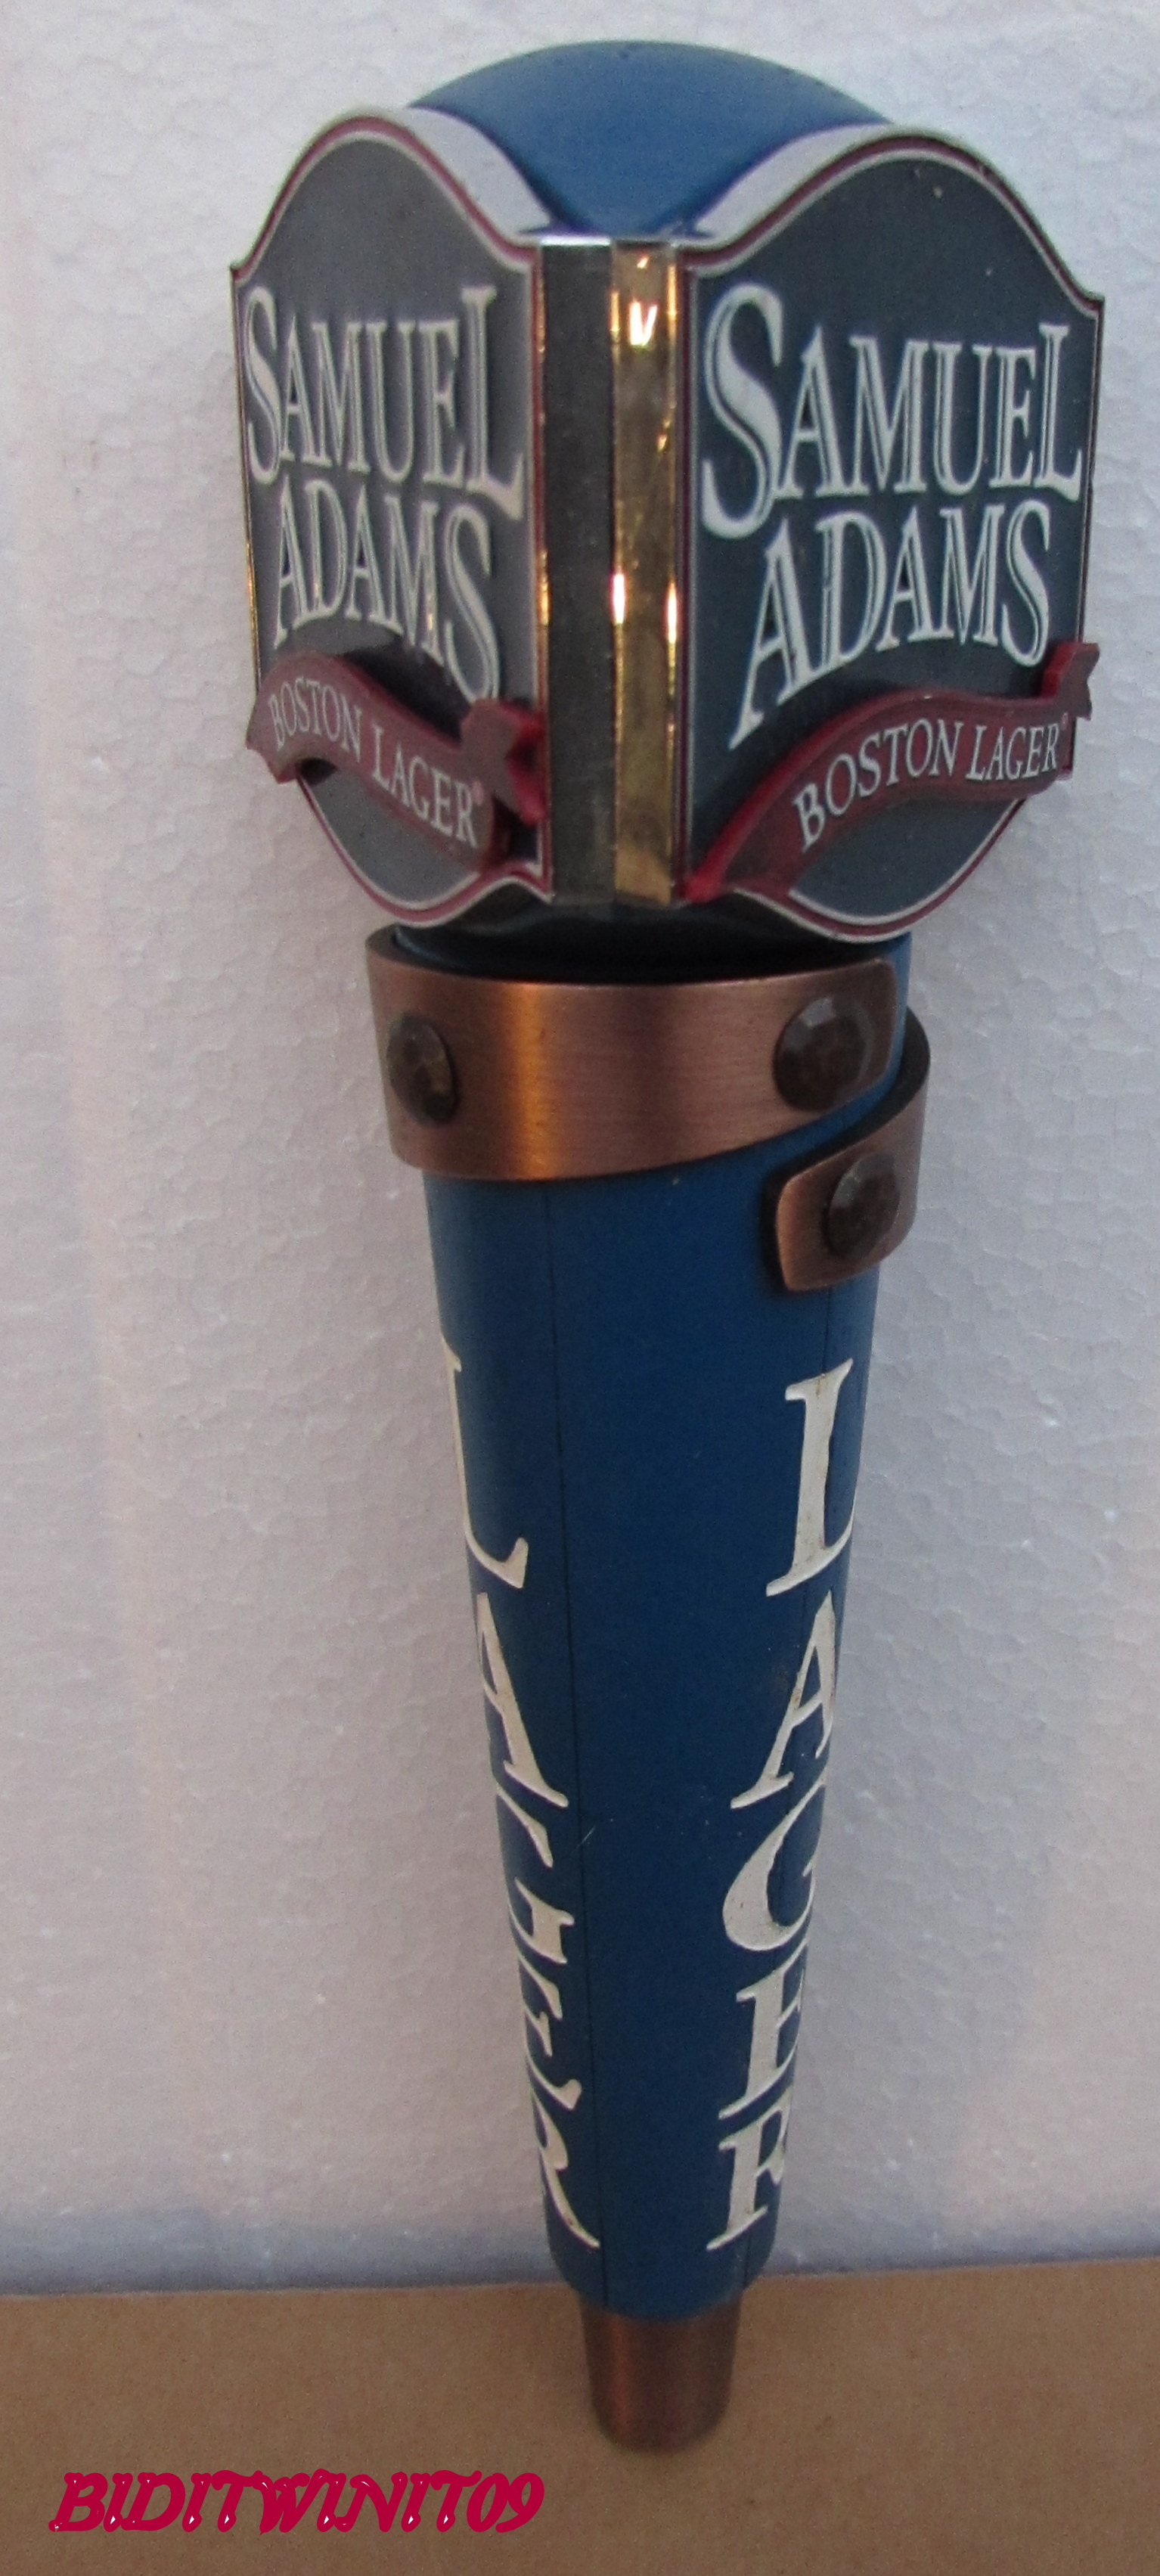 BEER TAP HANDLE SAMUEL ADAMS BOSTON LAGER E+